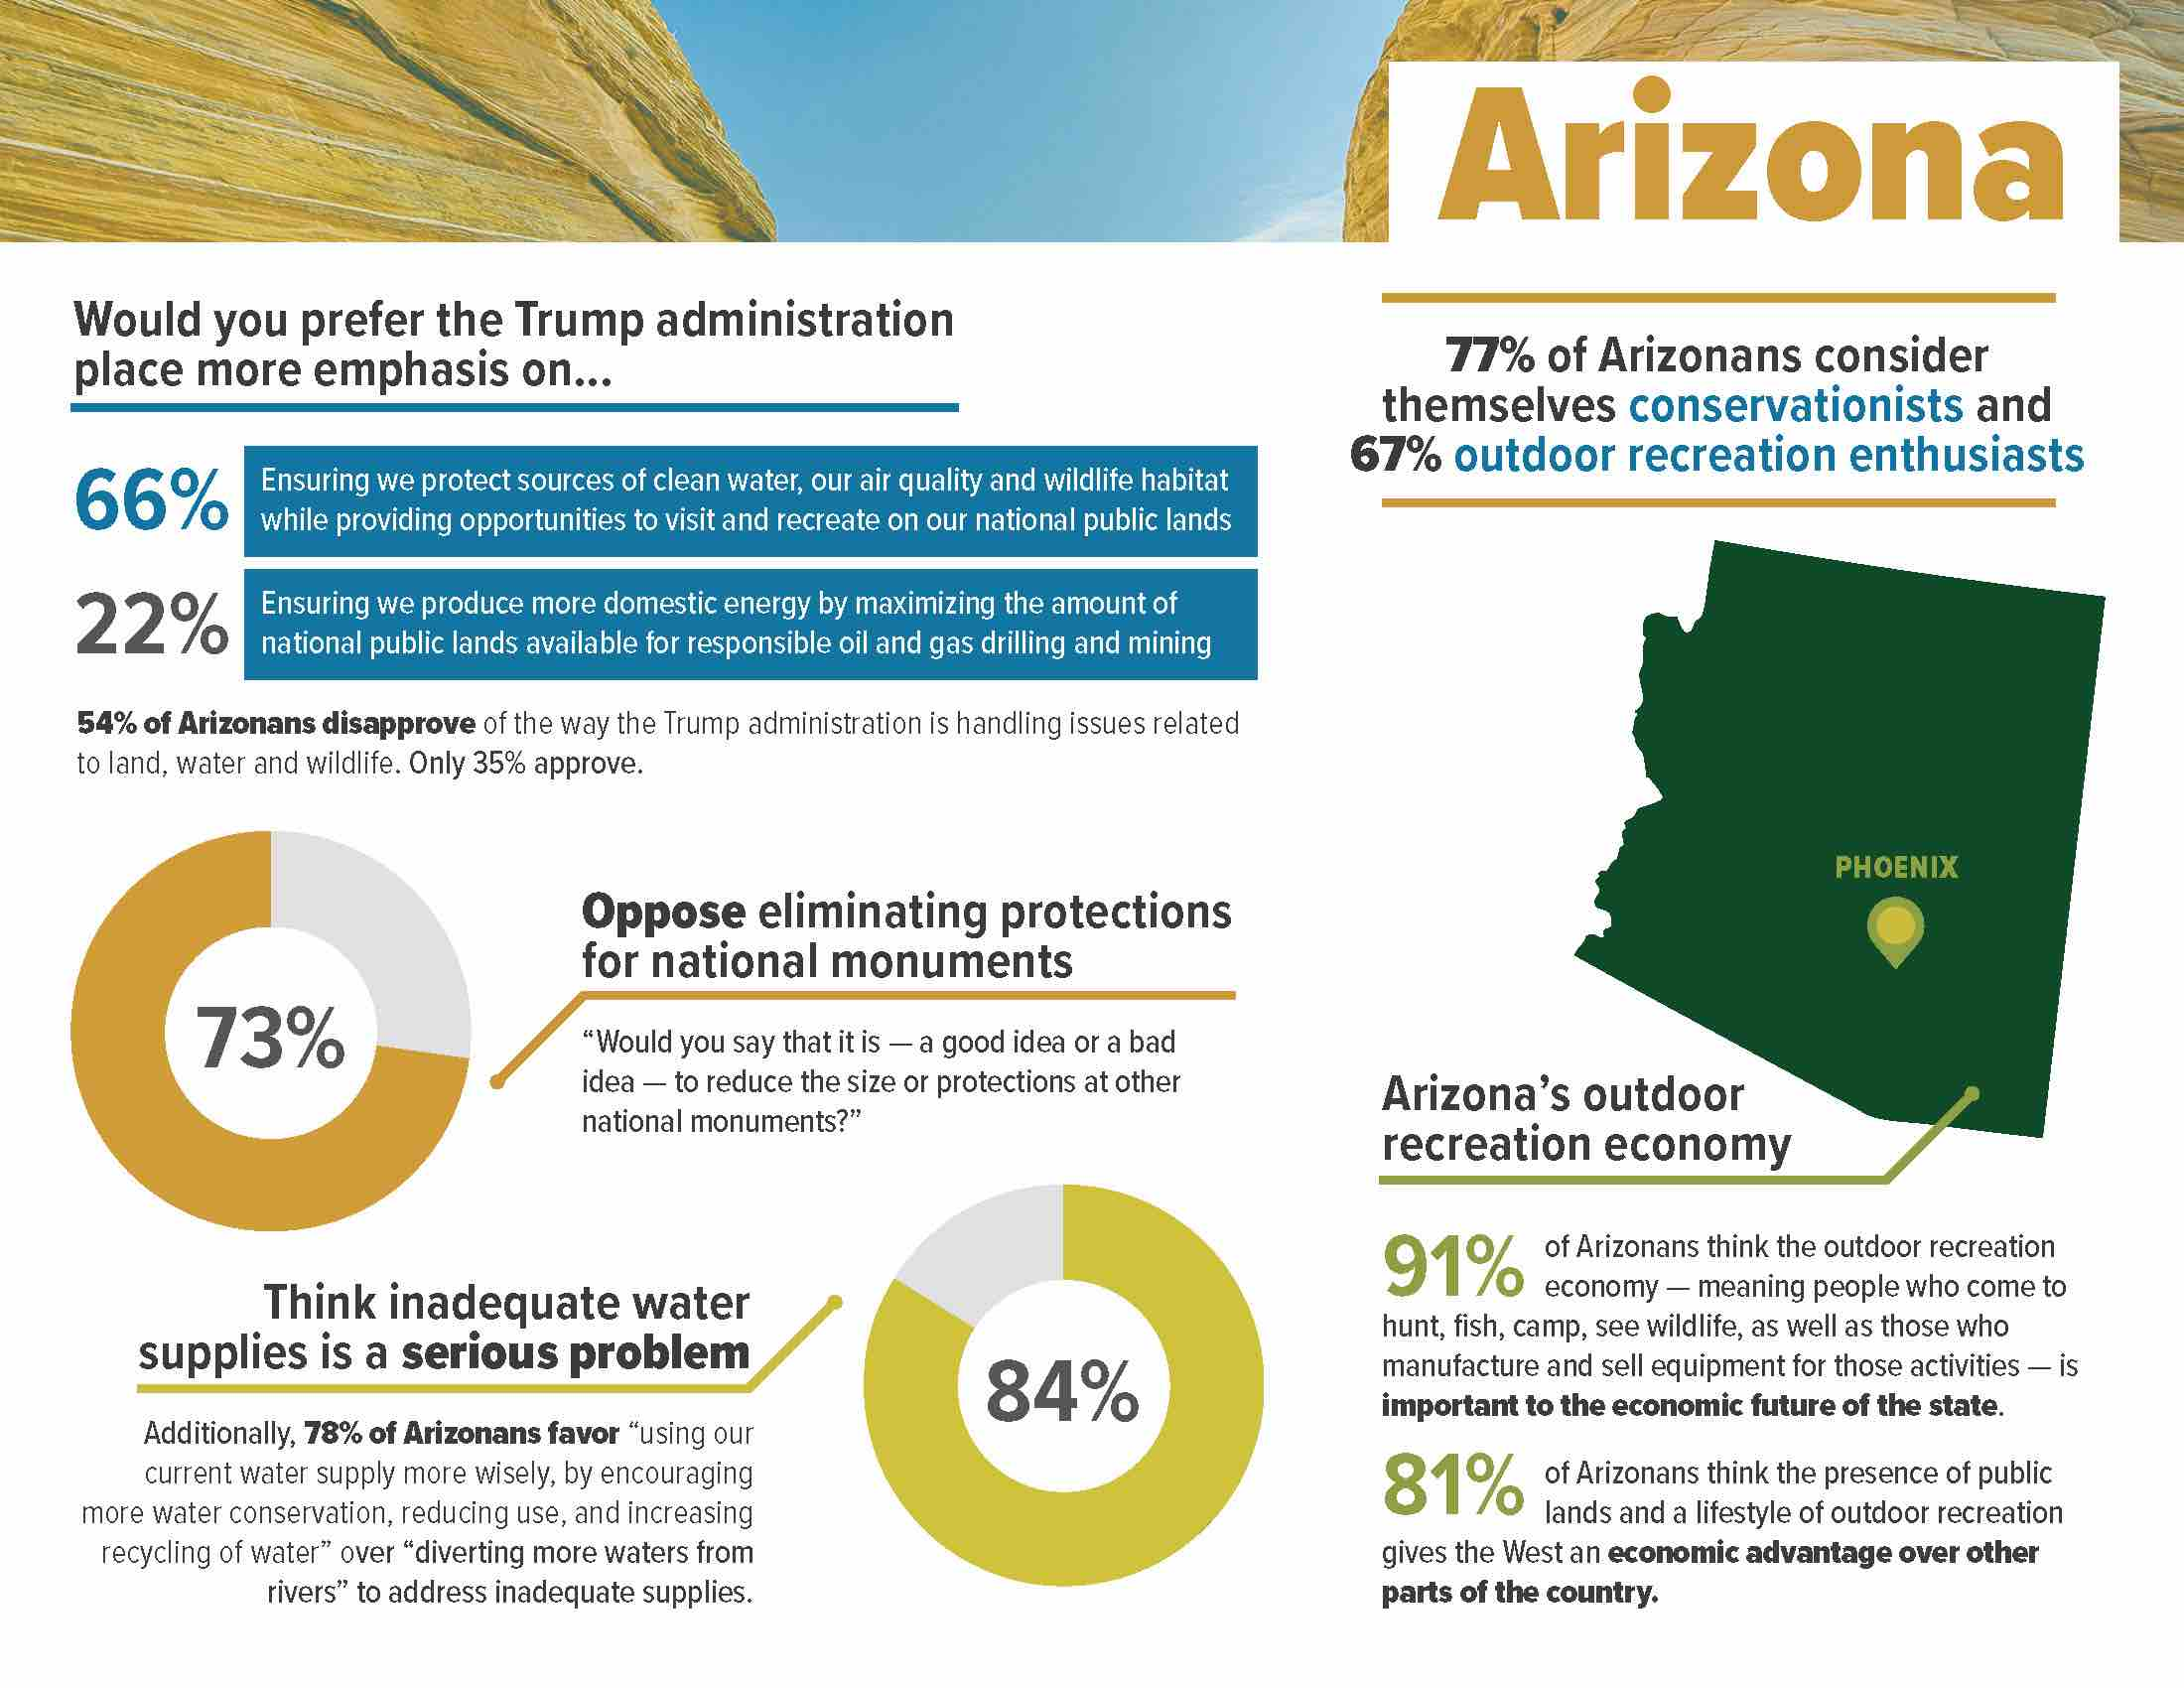 ConservationintheWest_2018__StateFactSheet_Arizona